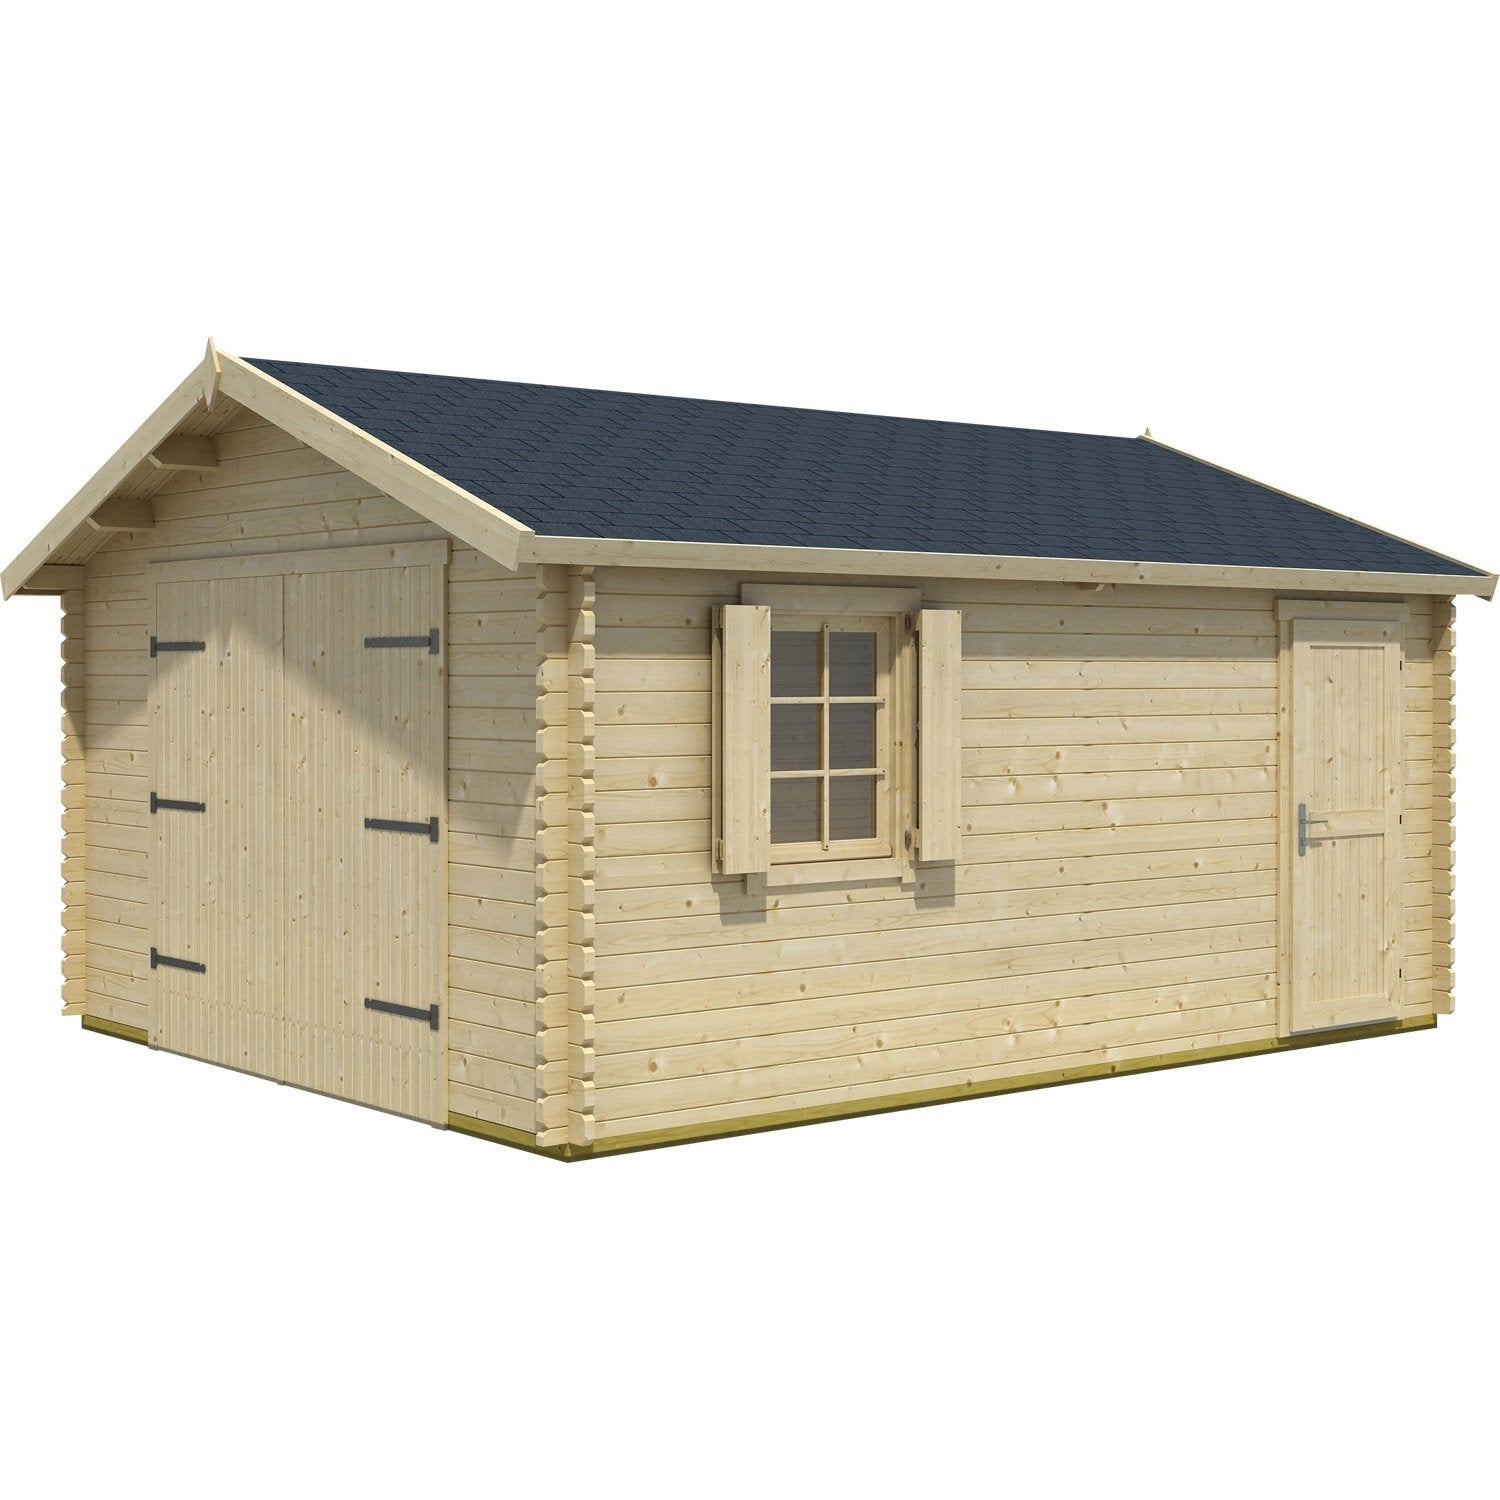 Garage bois kunda 1 voiture m leroy merlin for Garage en bois 20m2